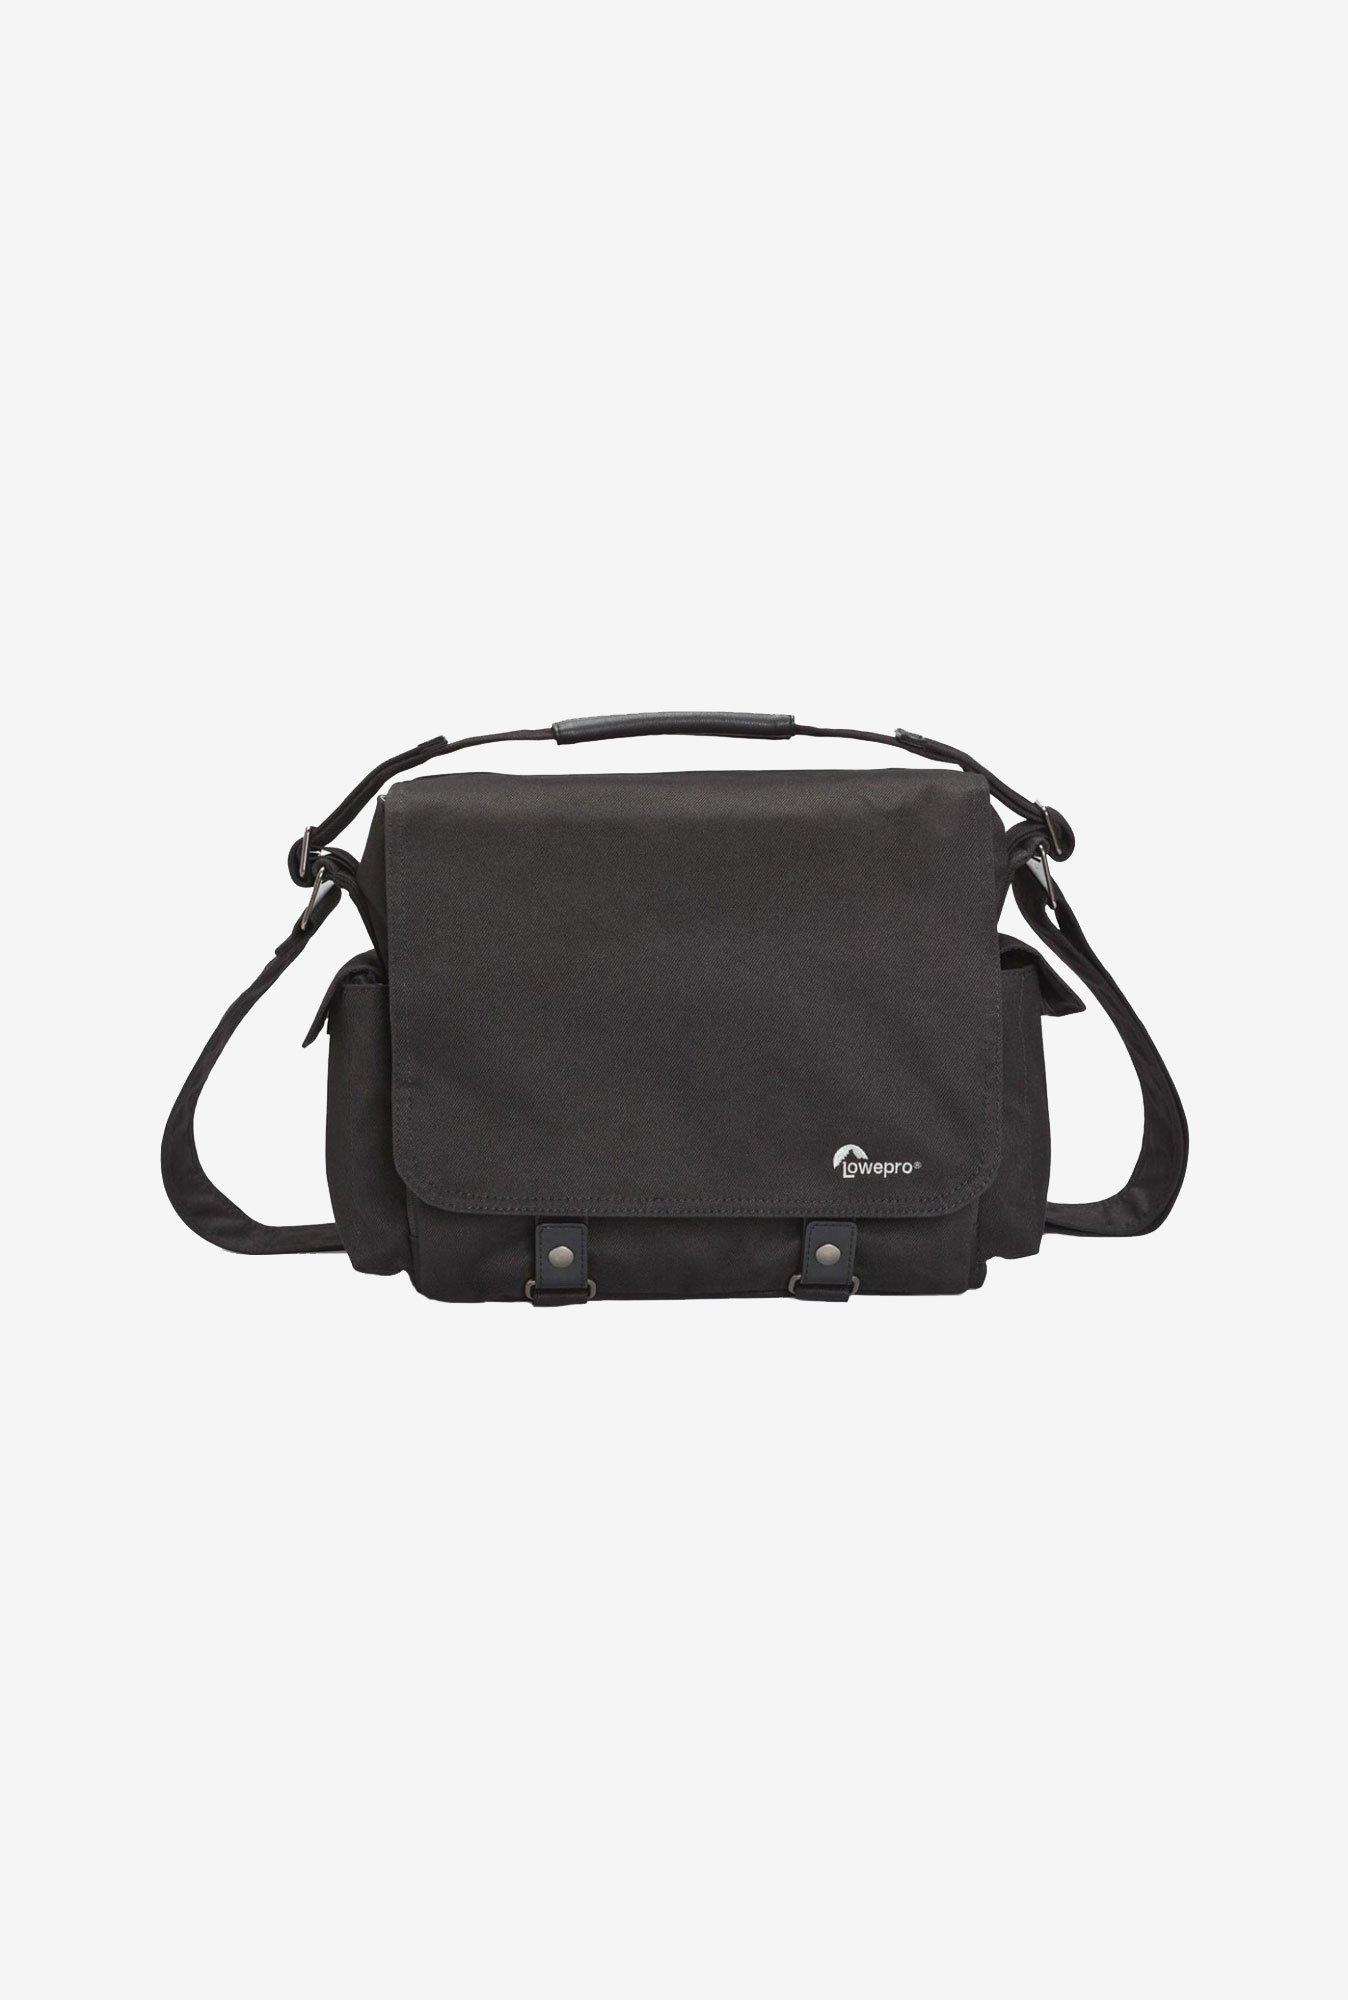 LowePro Urban Reporter 150 Camera Messenger Bag (Black)